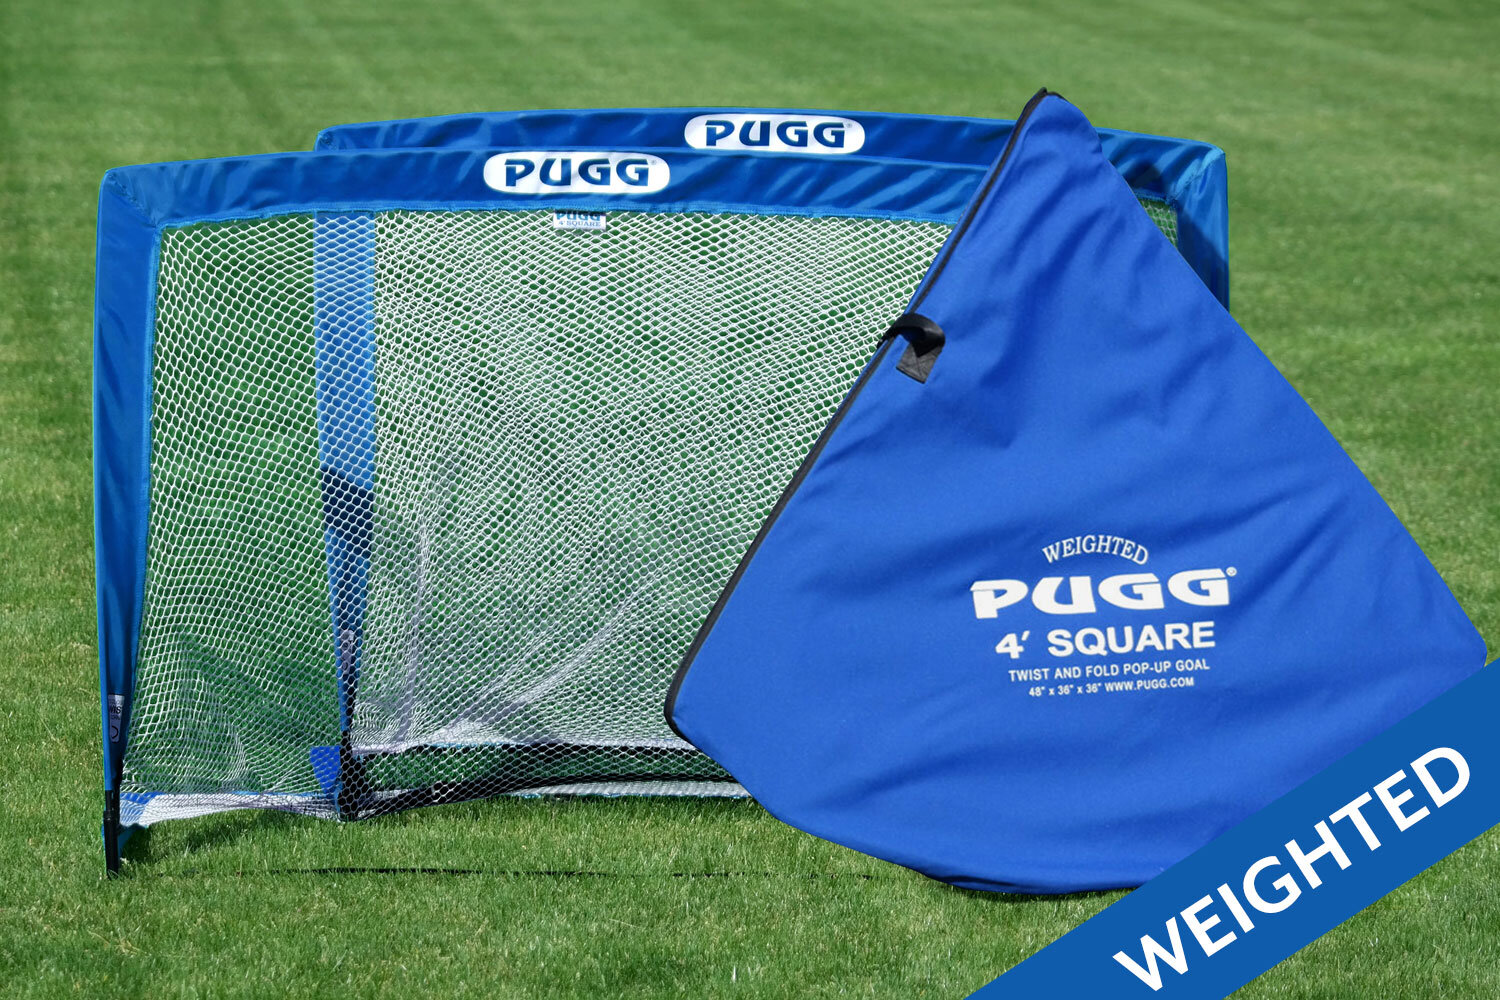 PUGG - Ultra U90 Weighted 4 Footer Pop-Up (Pair)